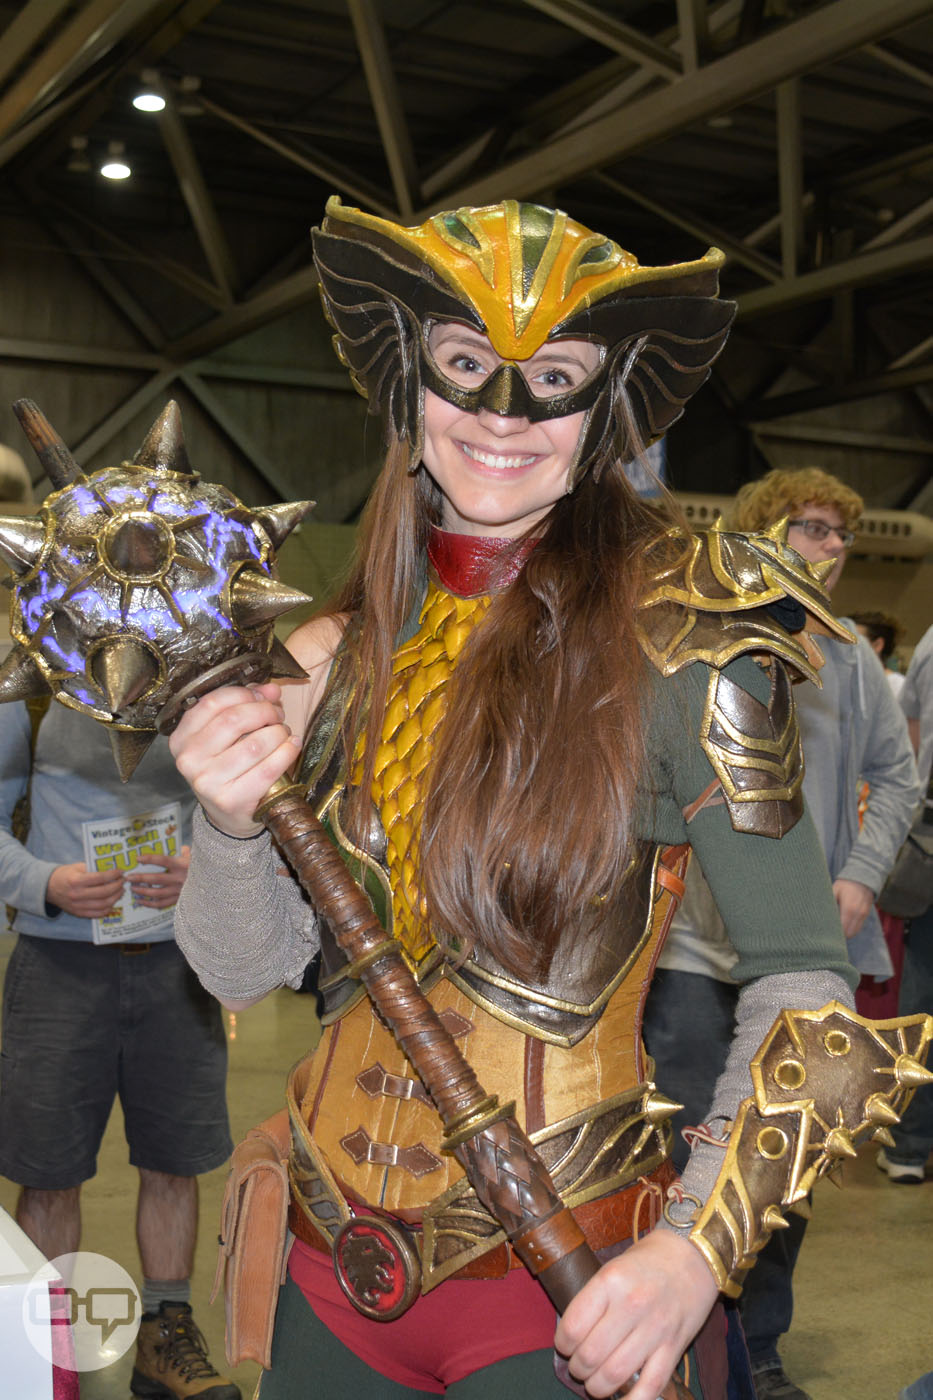 Planet-Comicon-2015-ProNerd-Cosplay-D5-1